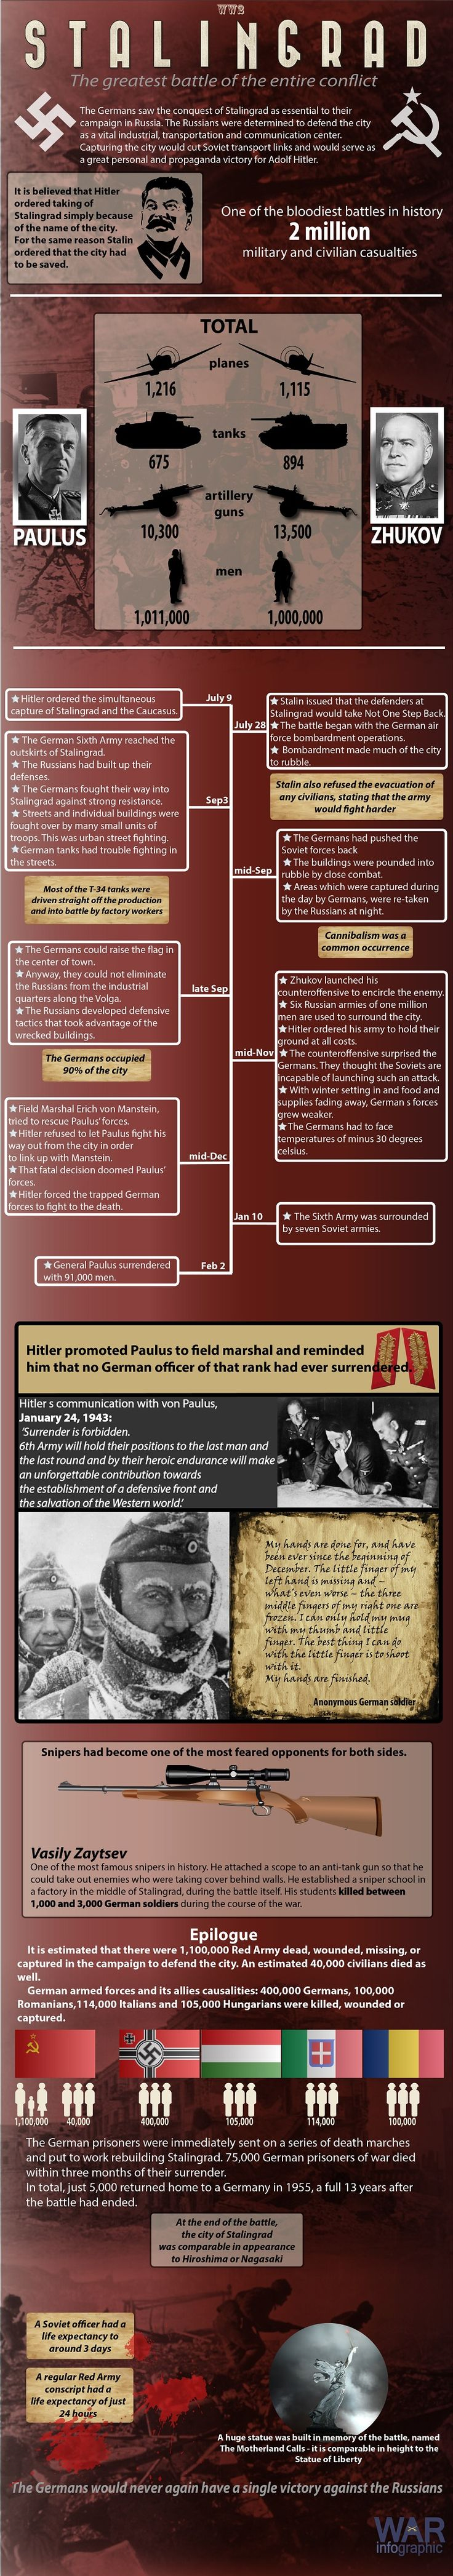 Infographic about the Stalingrad battle in World